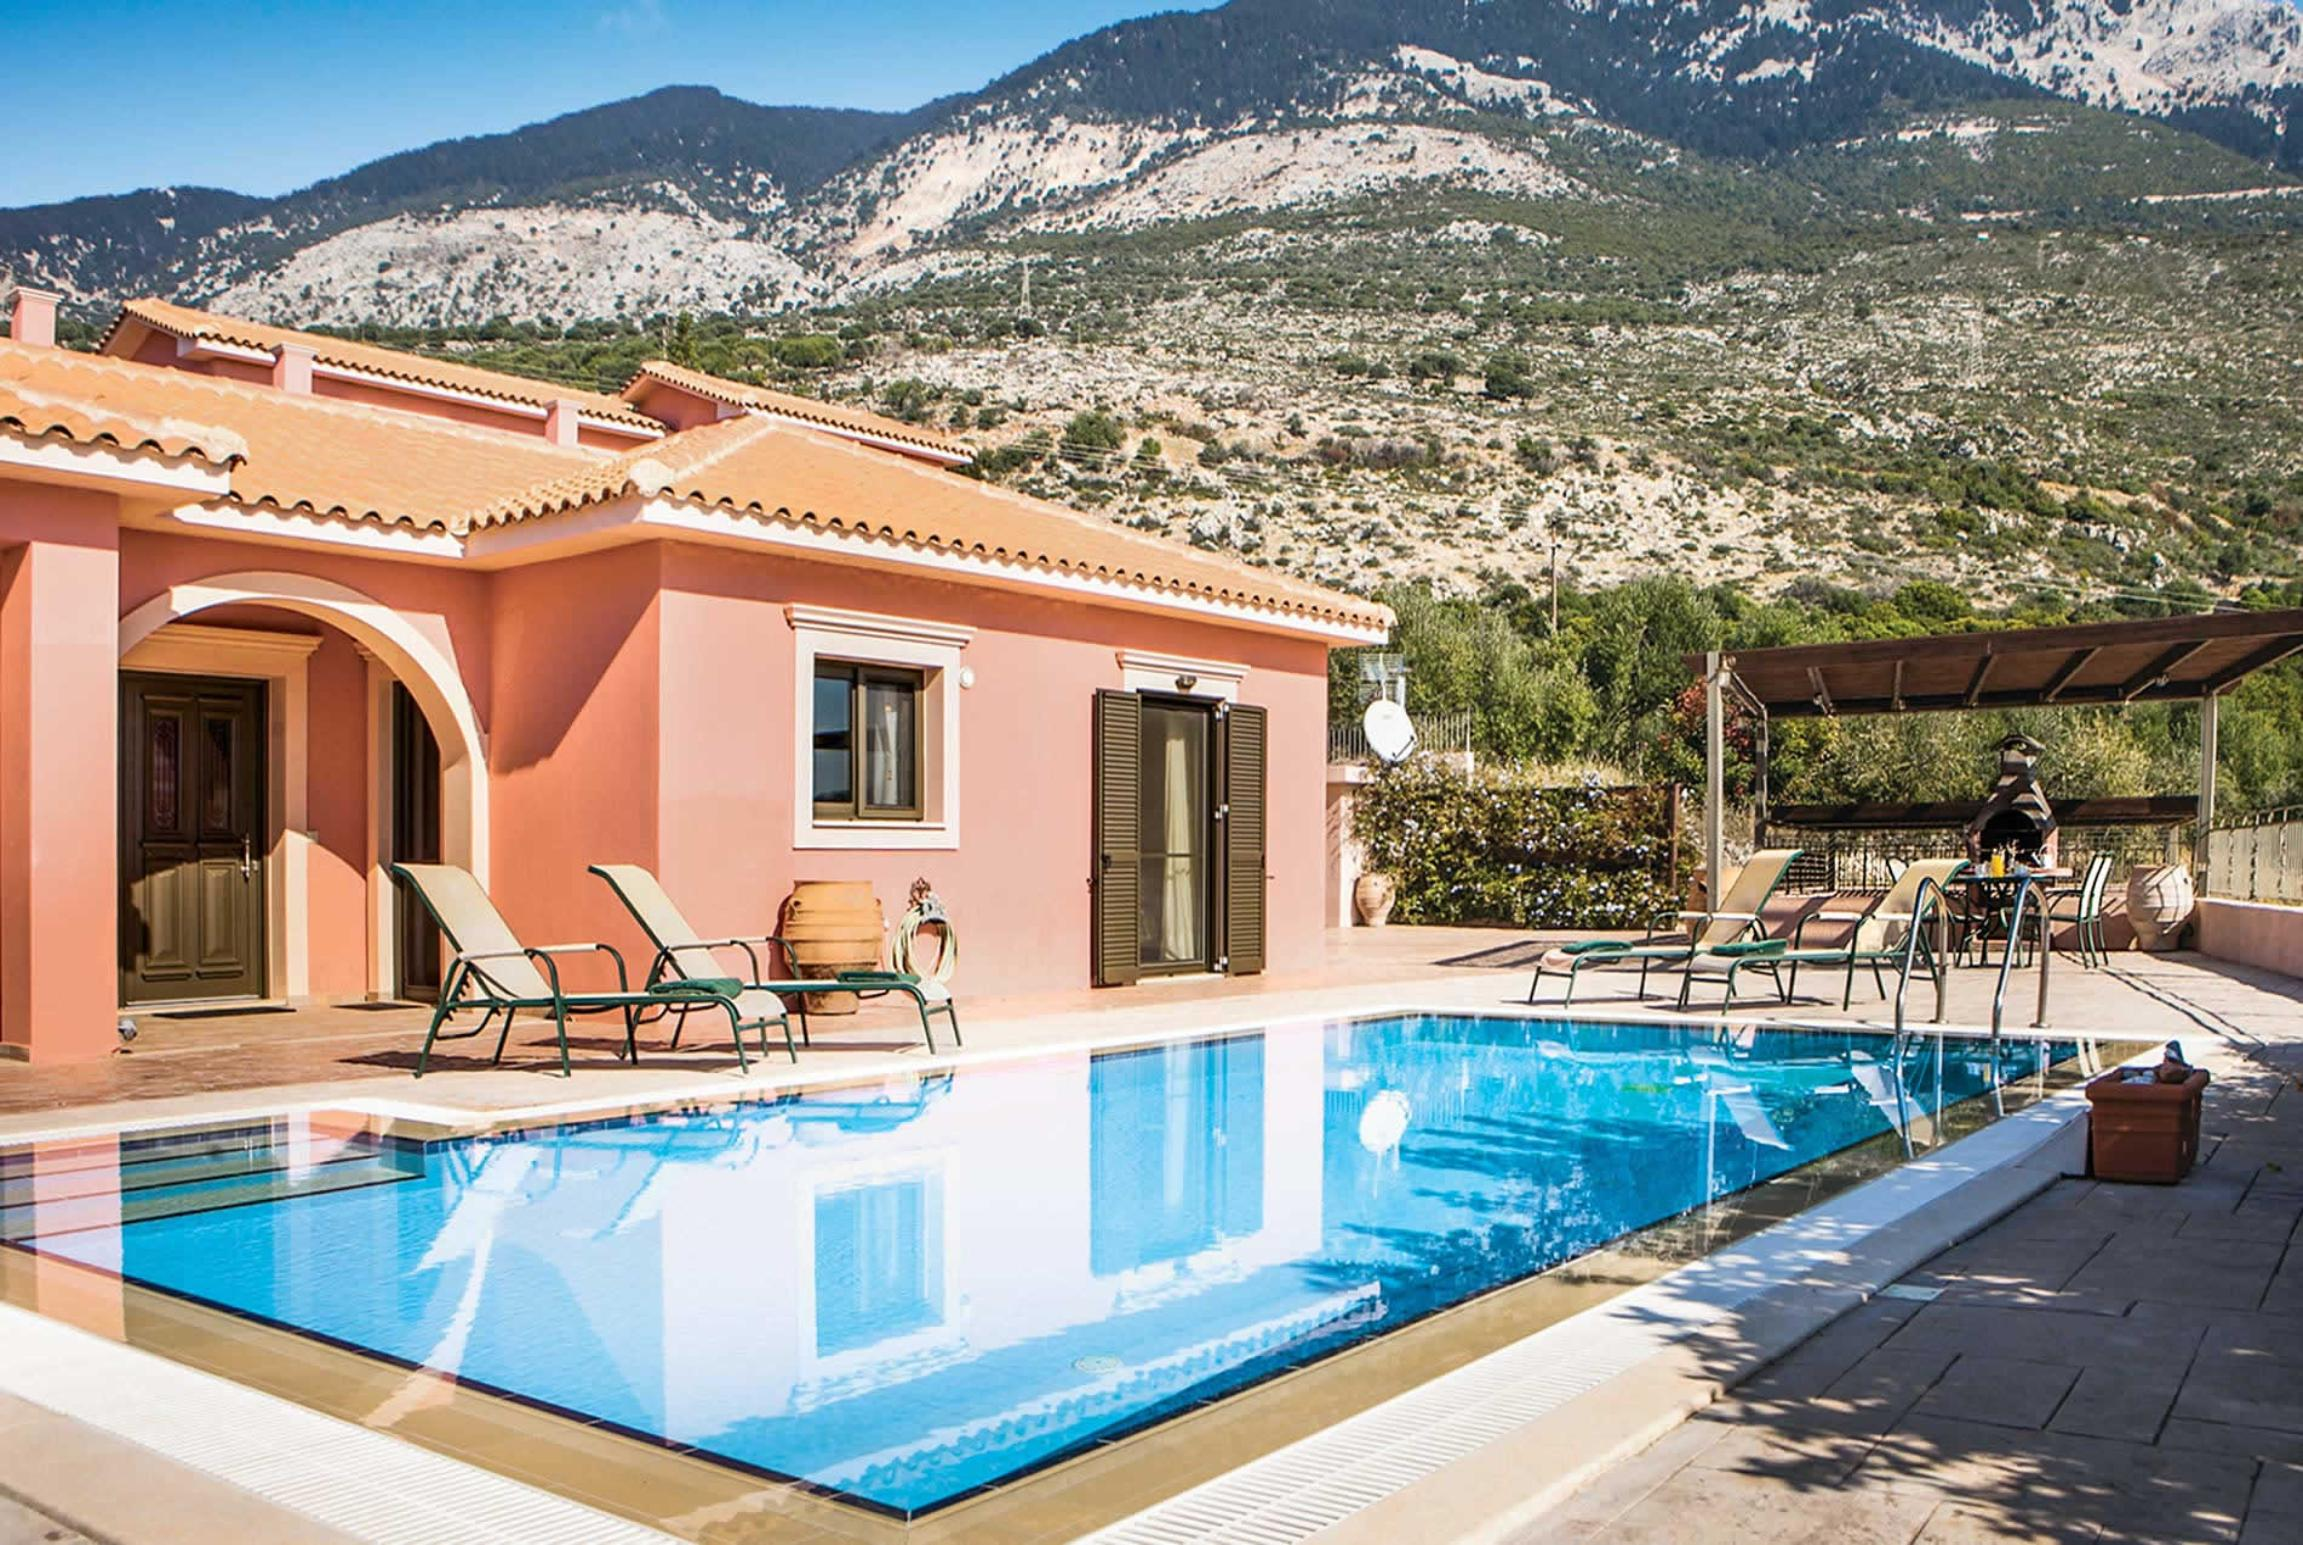 Read more about Meliti villa